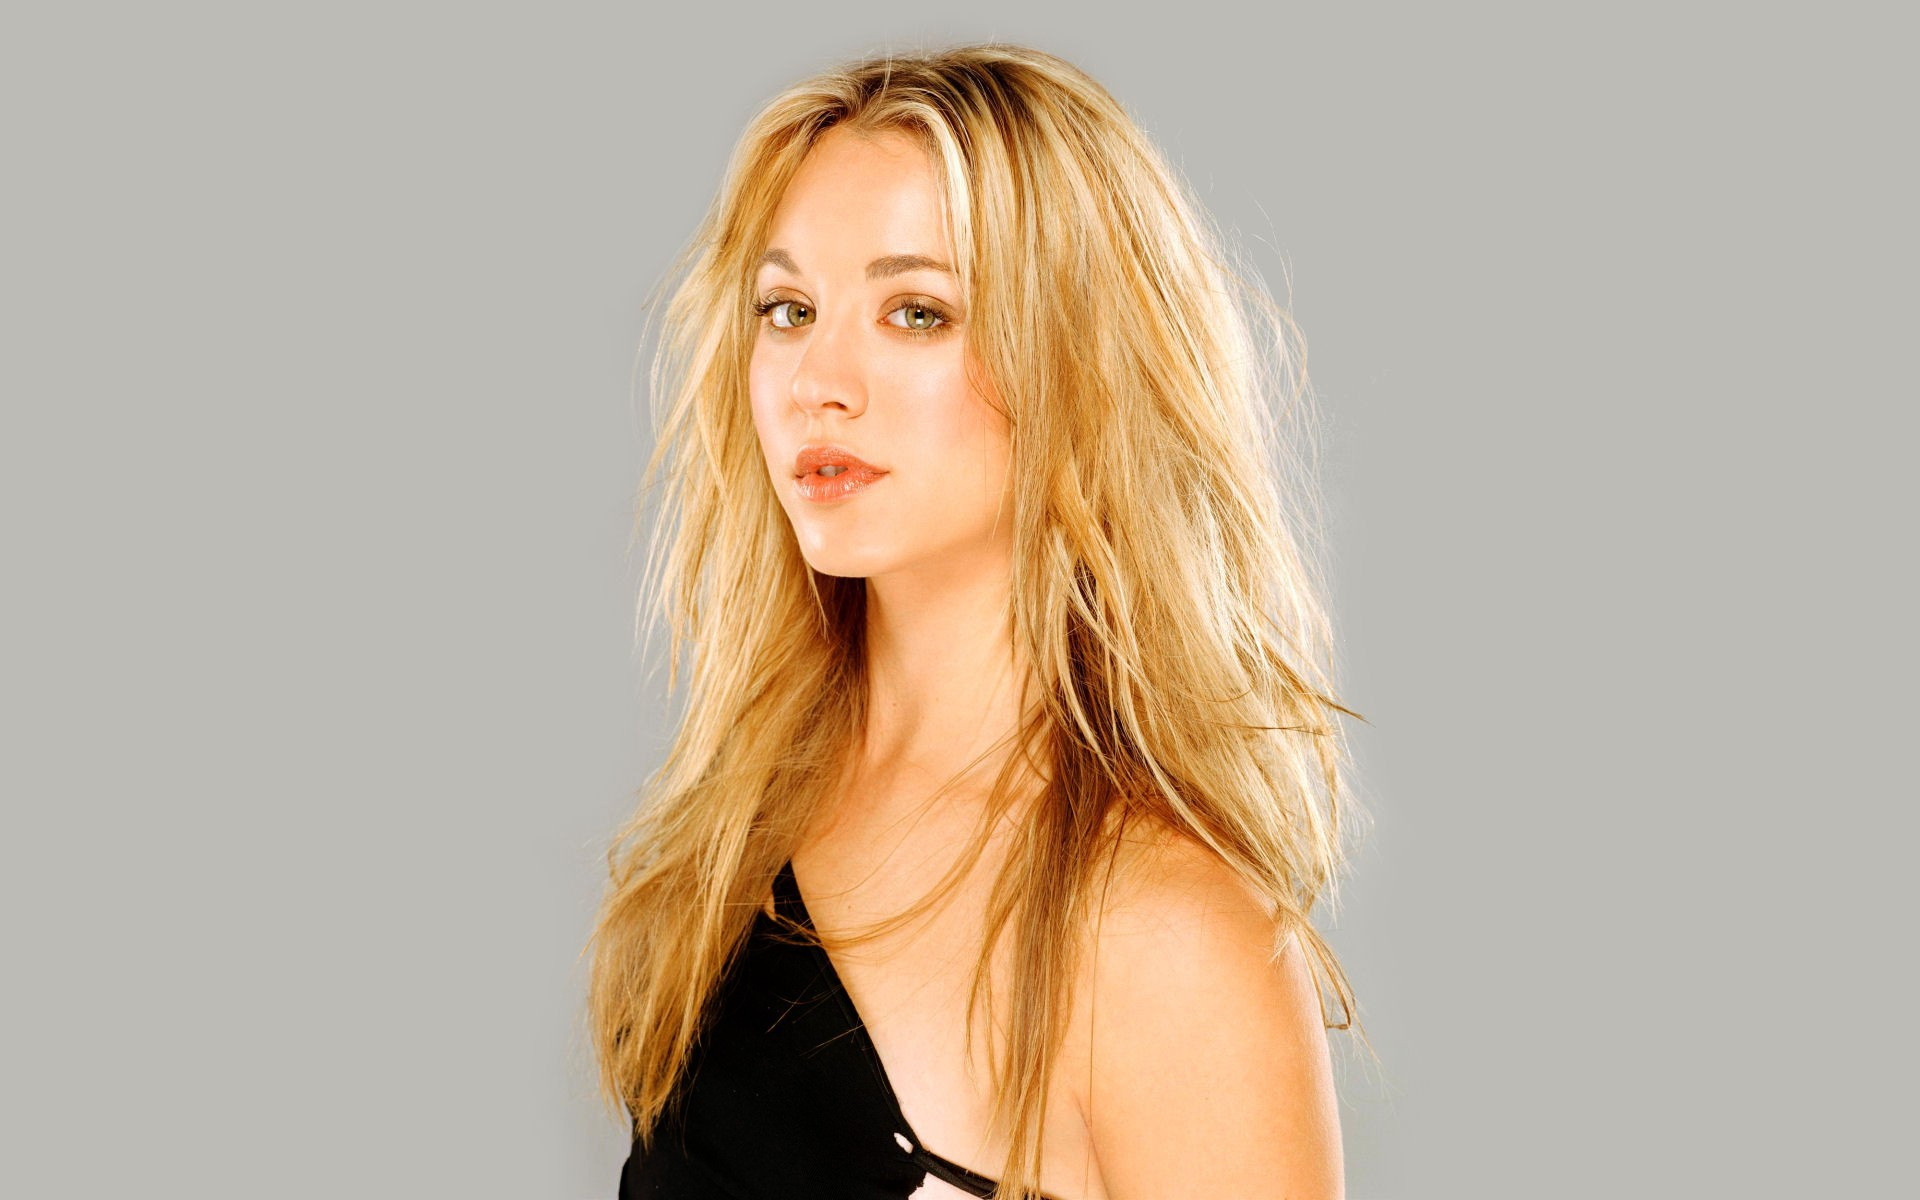 Kaley Cuoco Images